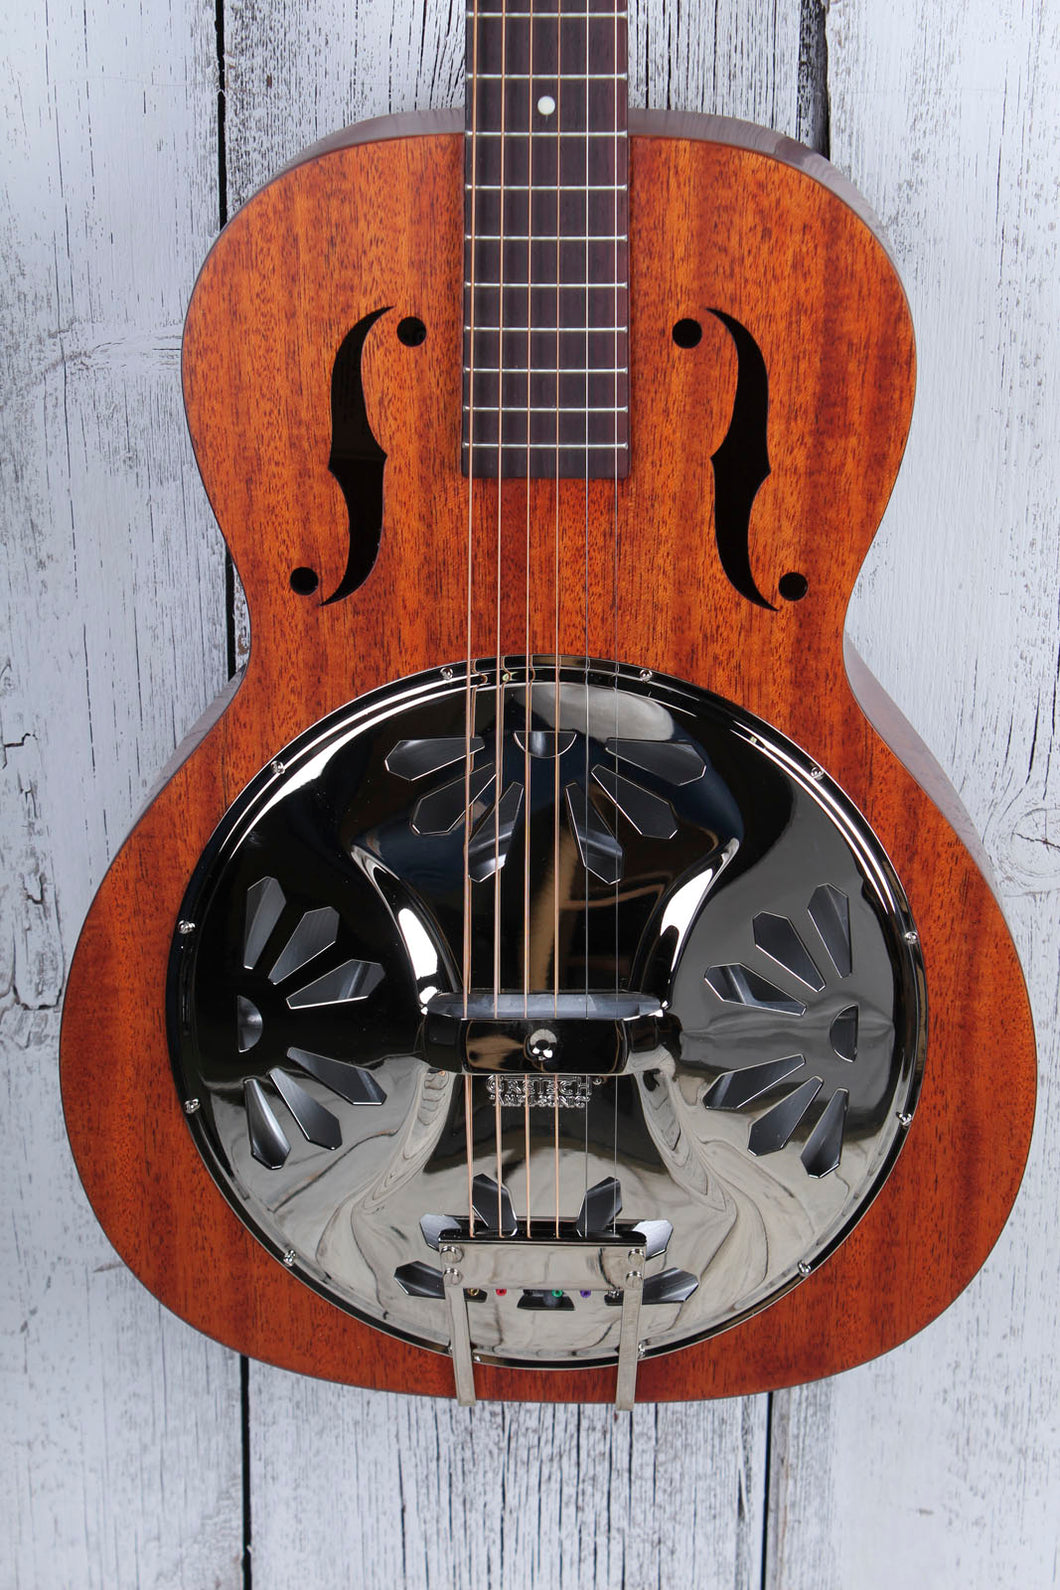 Gretsch G9200 Boxcar Round Neck Resonator Guitar Mahogany Body Natural Finish